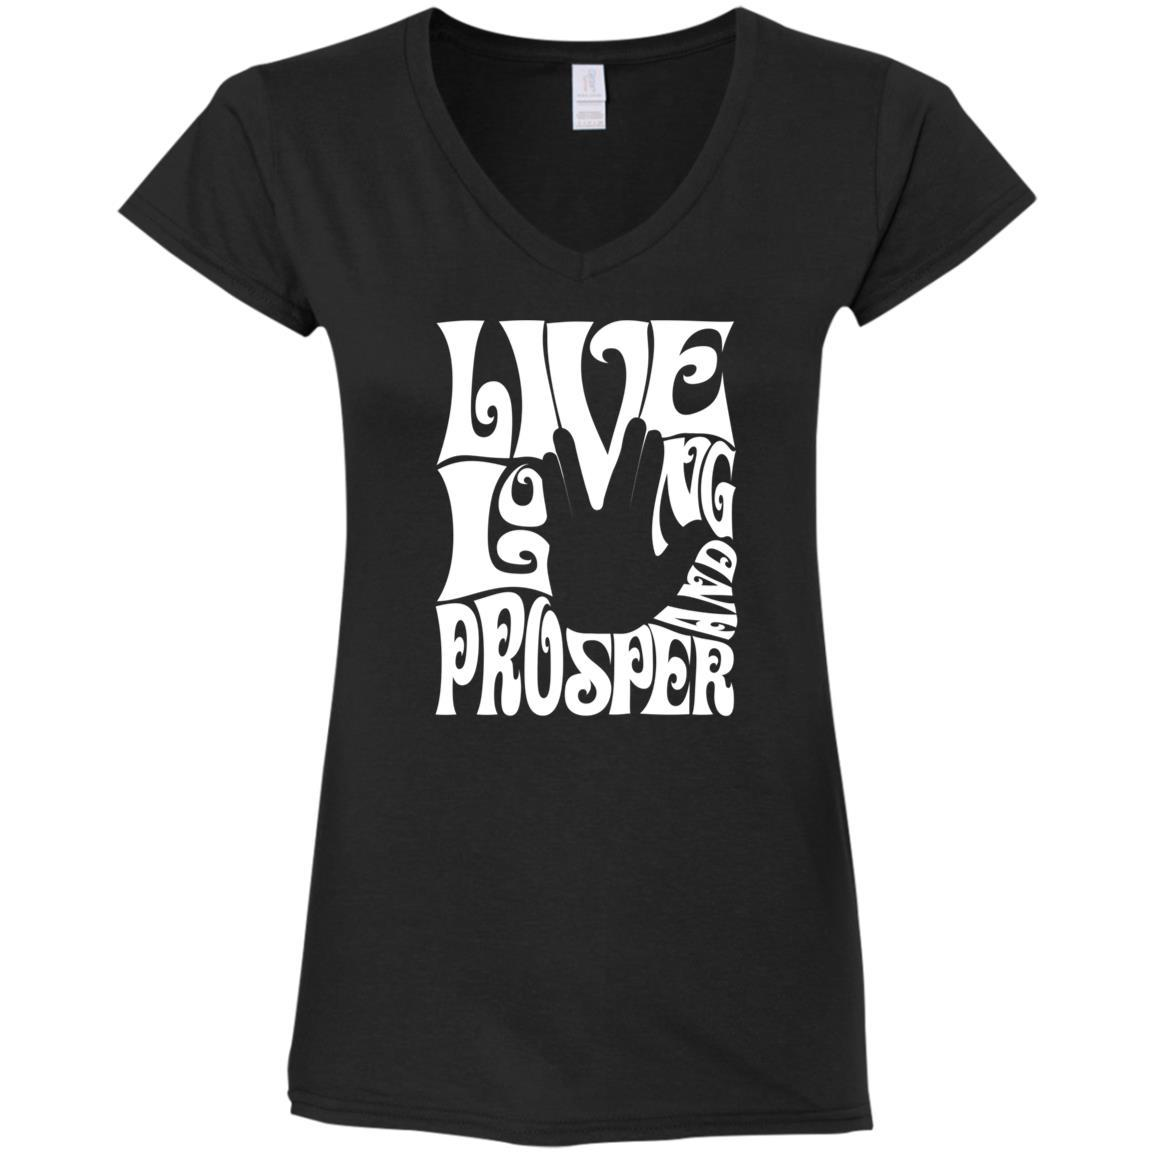 Prosper Retro Ladies V-Neck